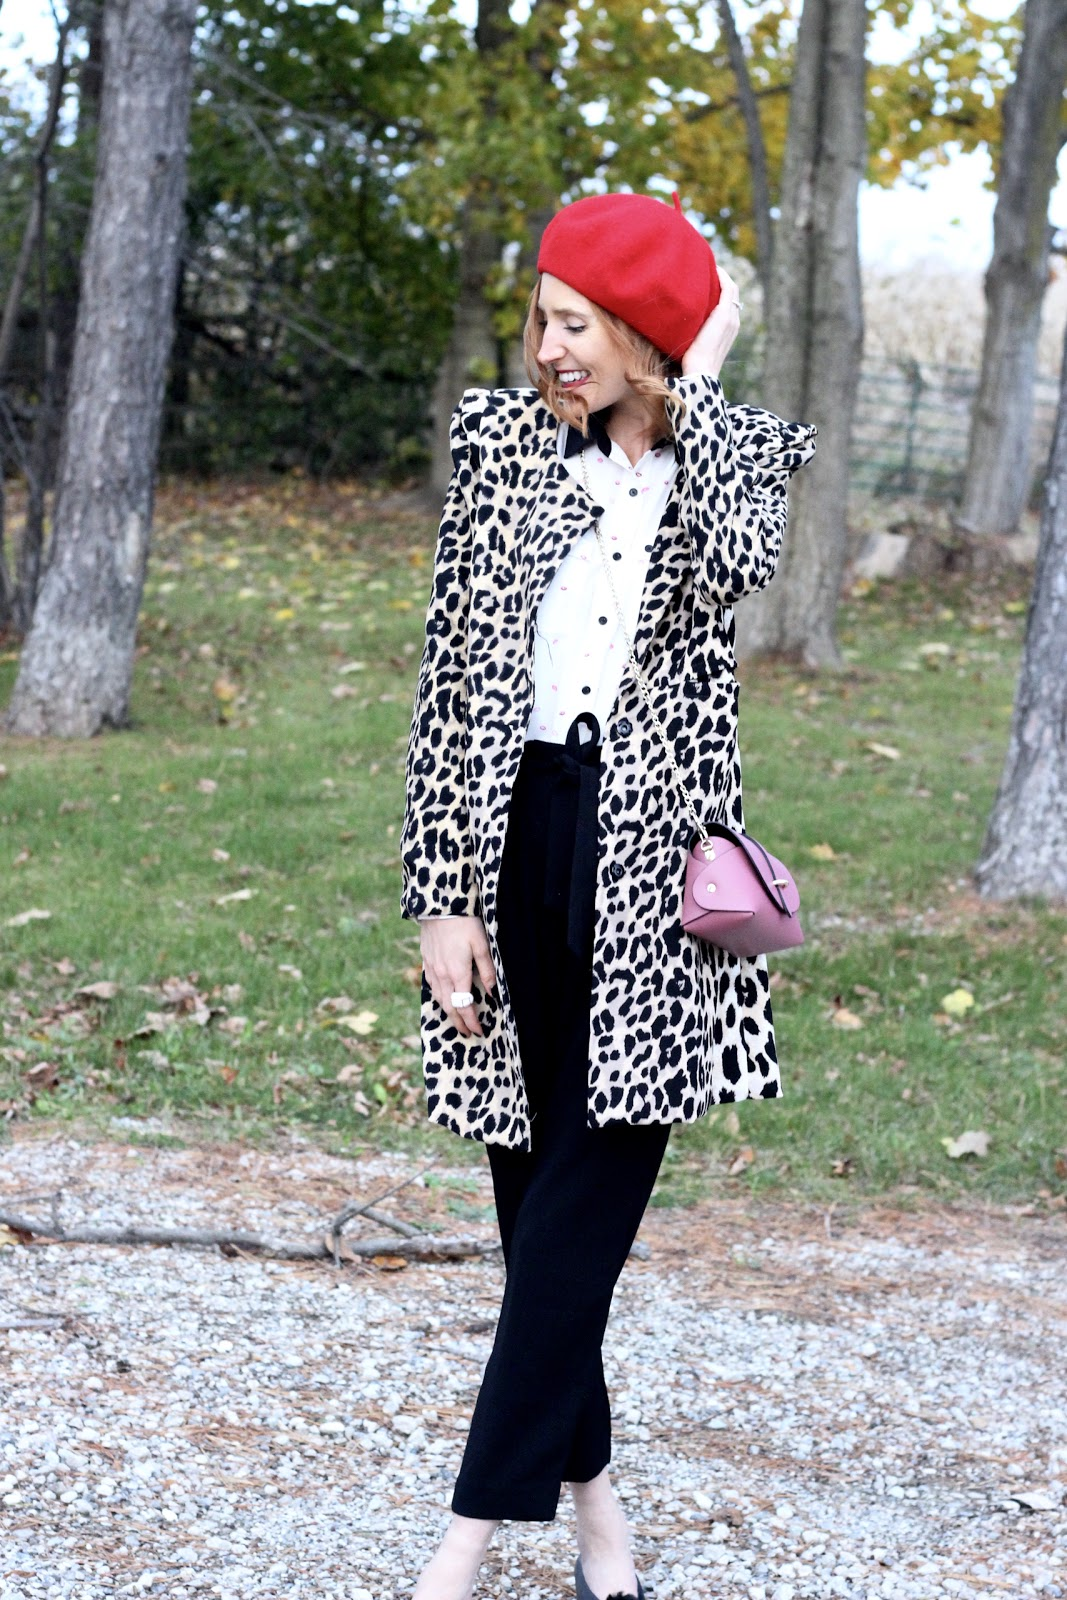 Lips blouse, red beret, blue lemon bag paris, leopard coat, zara shoes, pombons